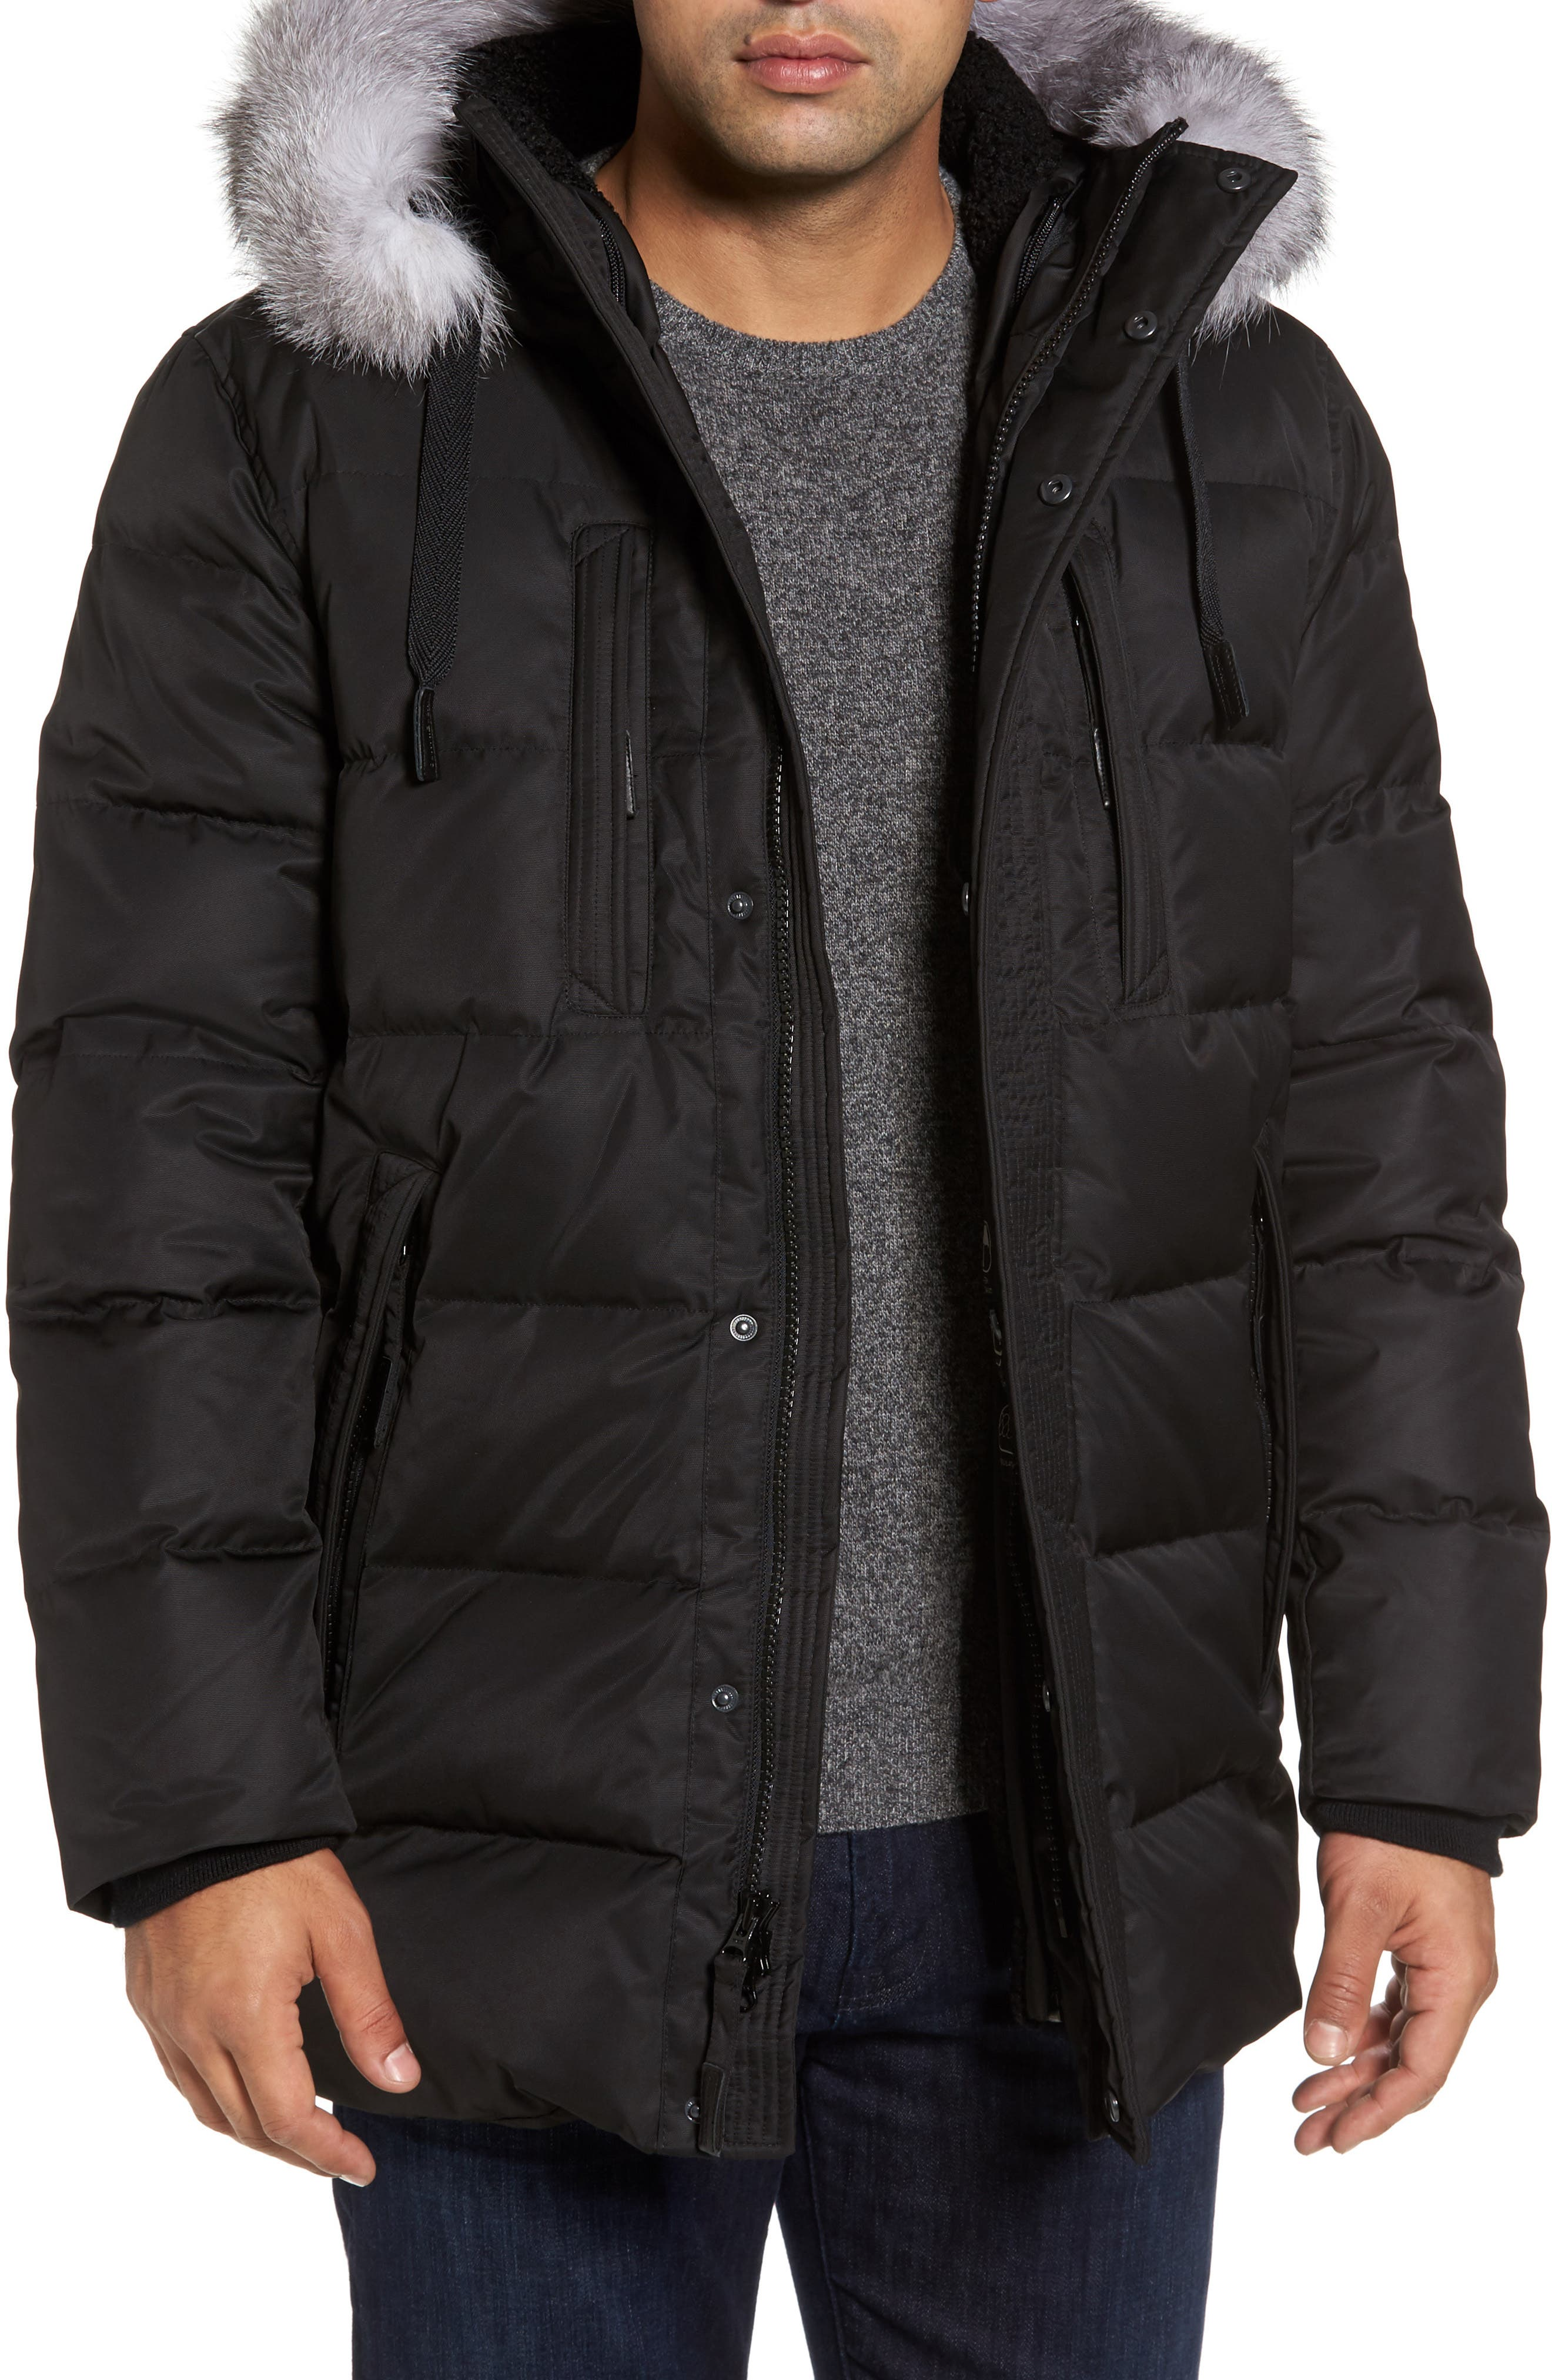 Andrew Marc Quilted Down Jacket with Genuine Fox Fur Trim